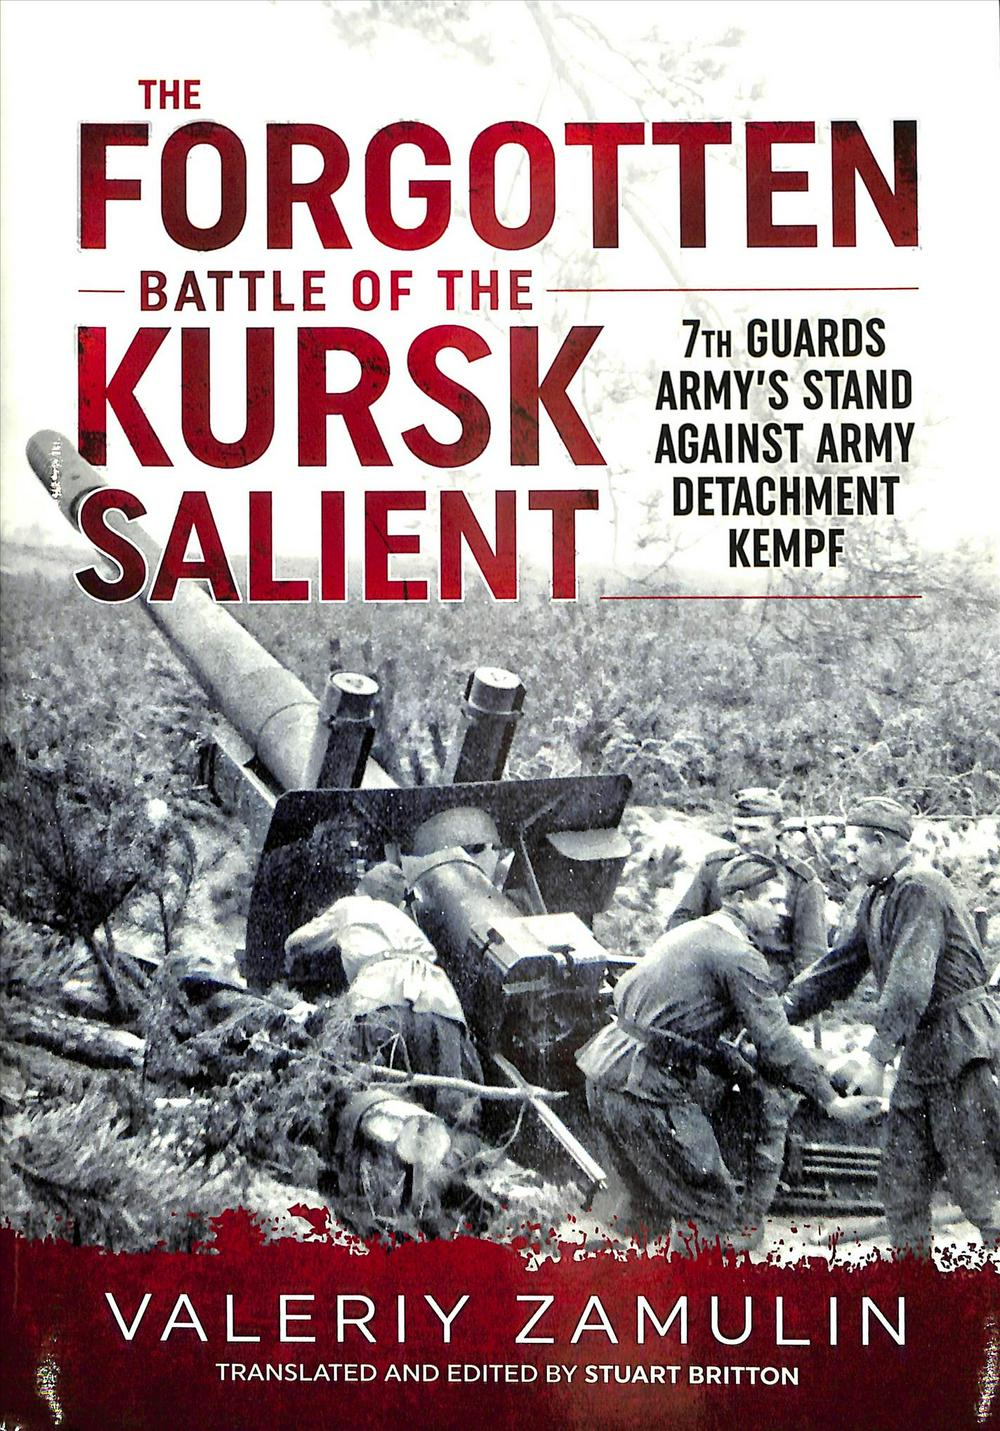 The Forgotten Battle of the Kursk Salient: Army Detachment Kempf's Auxiliary Offensive